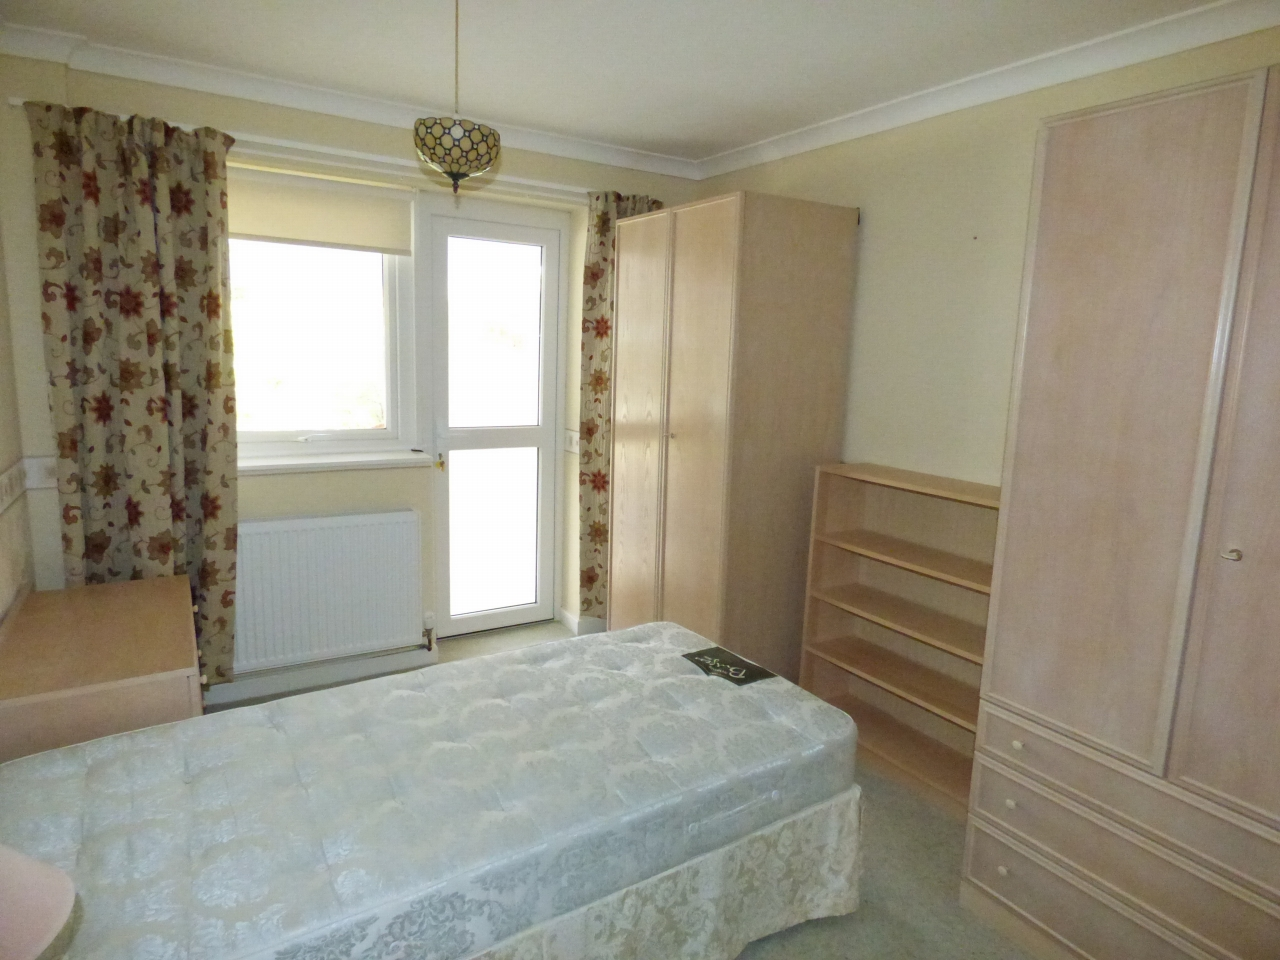 2 Bedroom Detached Bungalow Bungalow For Sale - Image 7